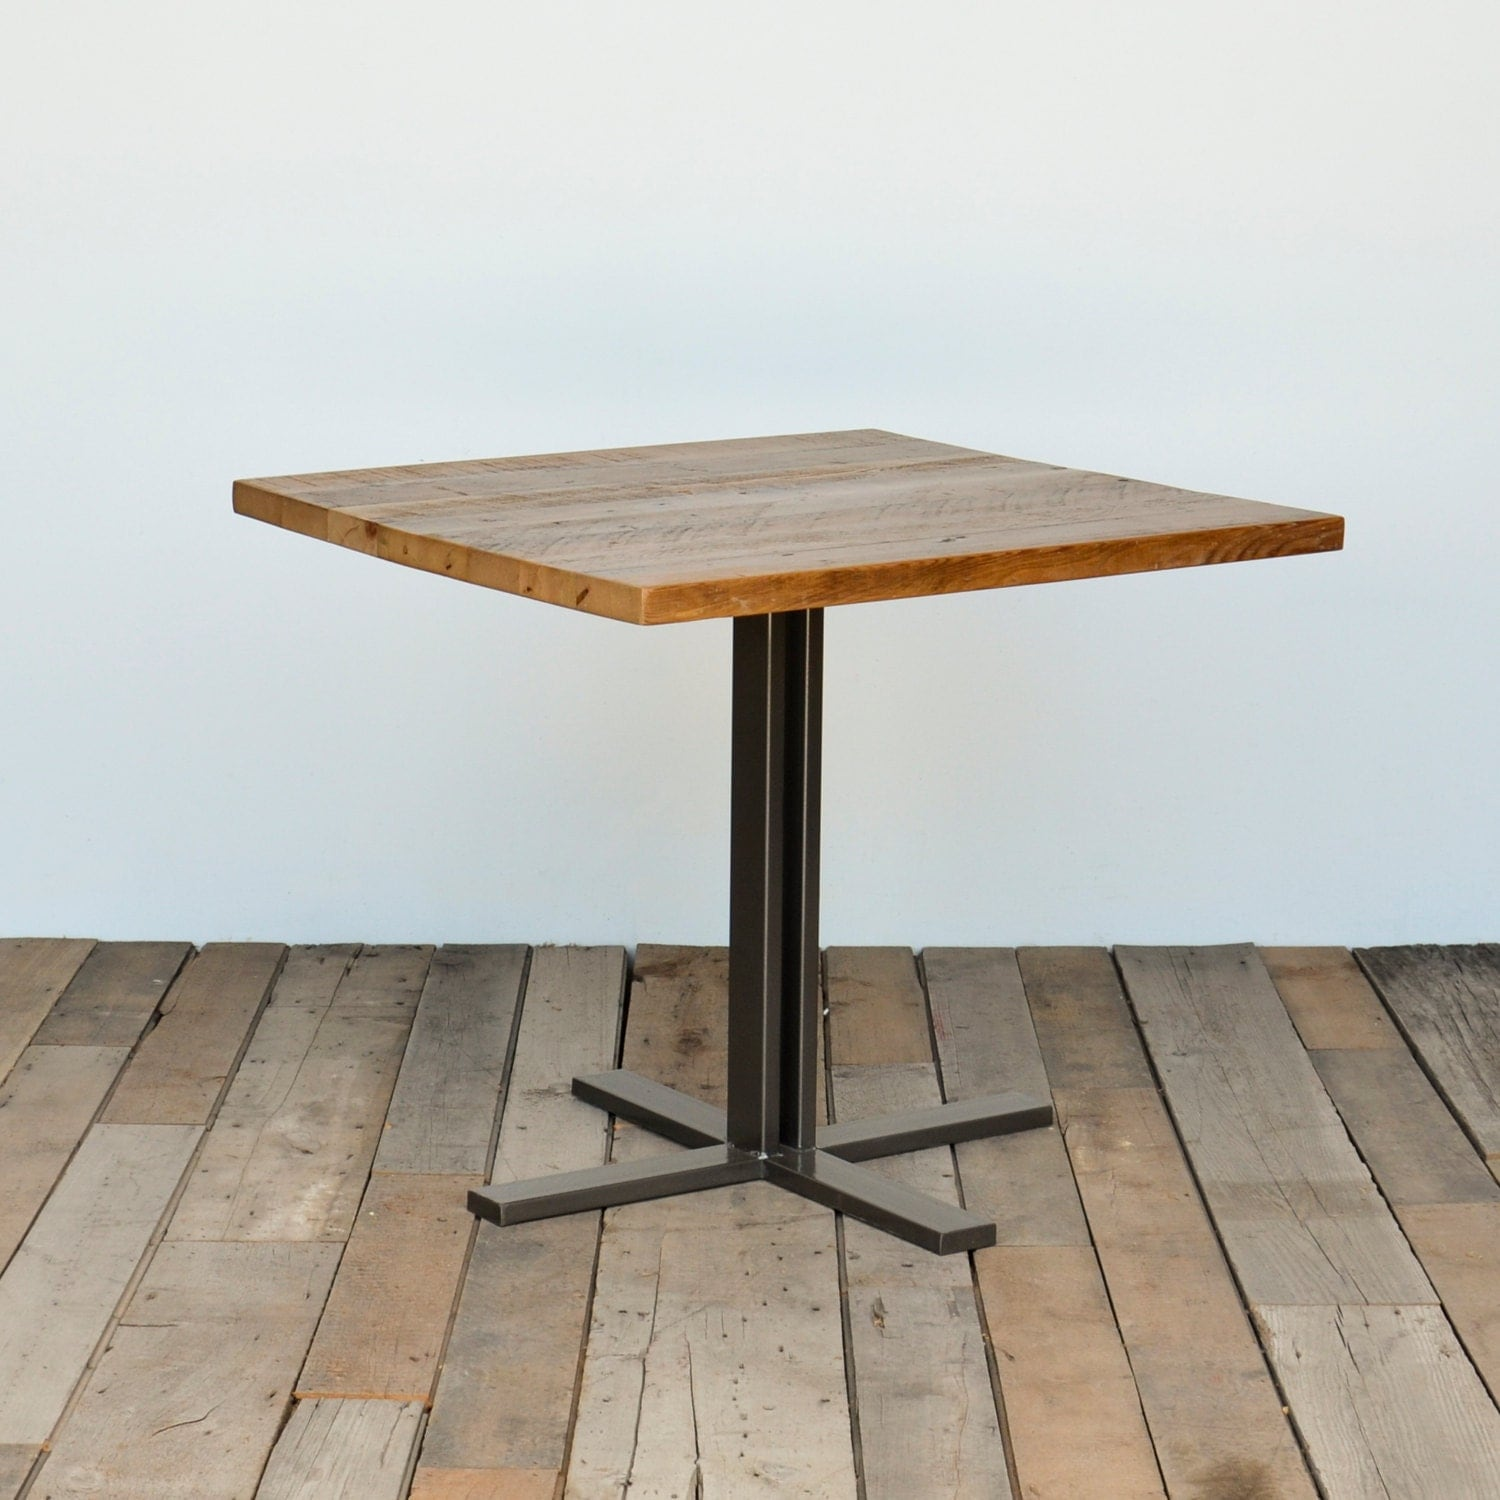 Small Wood Table With Hand Welded Square Steel Pedestal Base